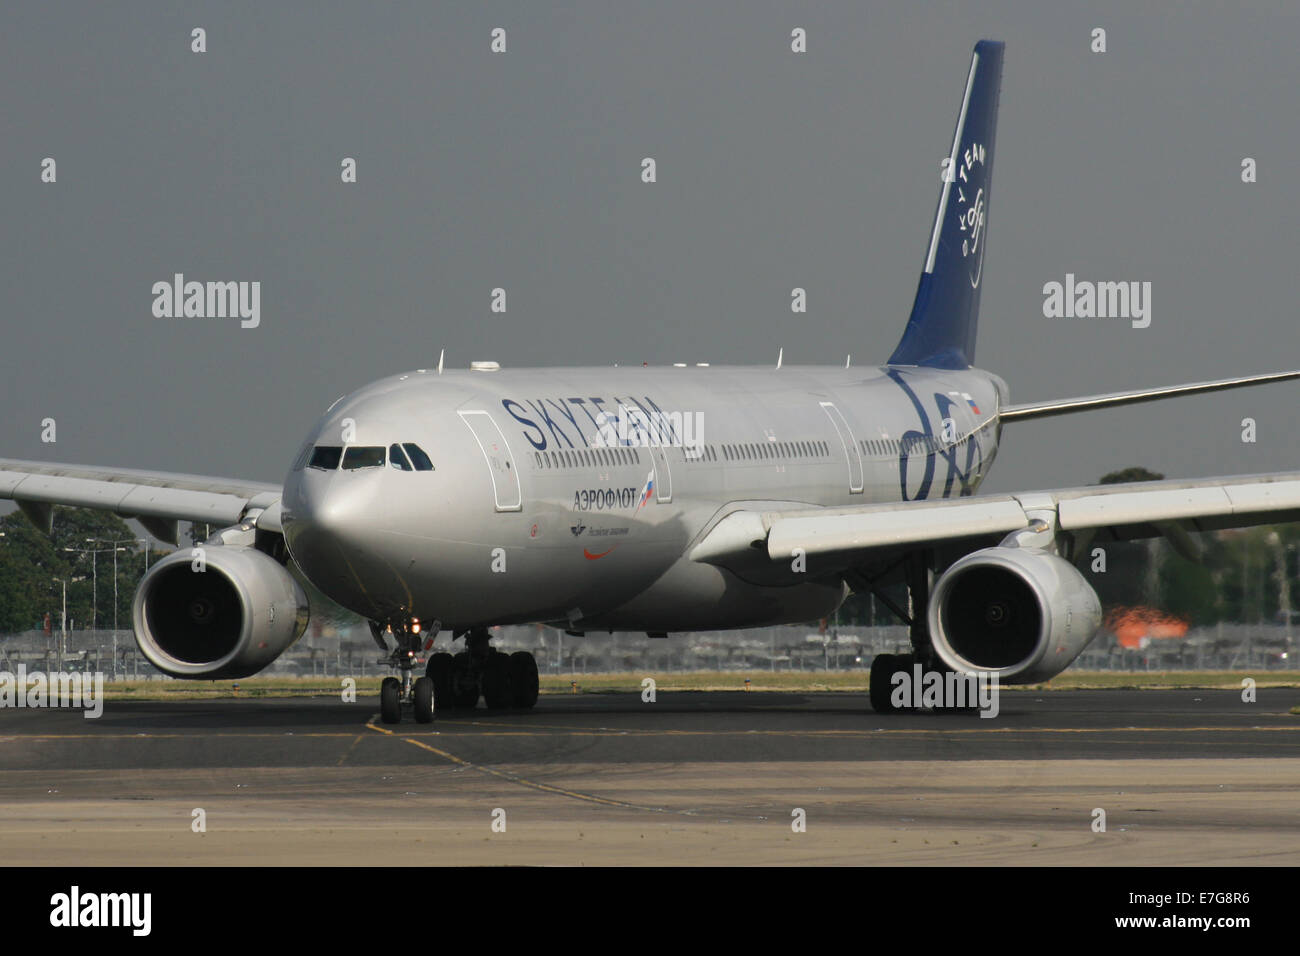 AEROFLOT AIRBUS A330 IN SKYTEAM ALLIANCE LIVERY - Stock Image